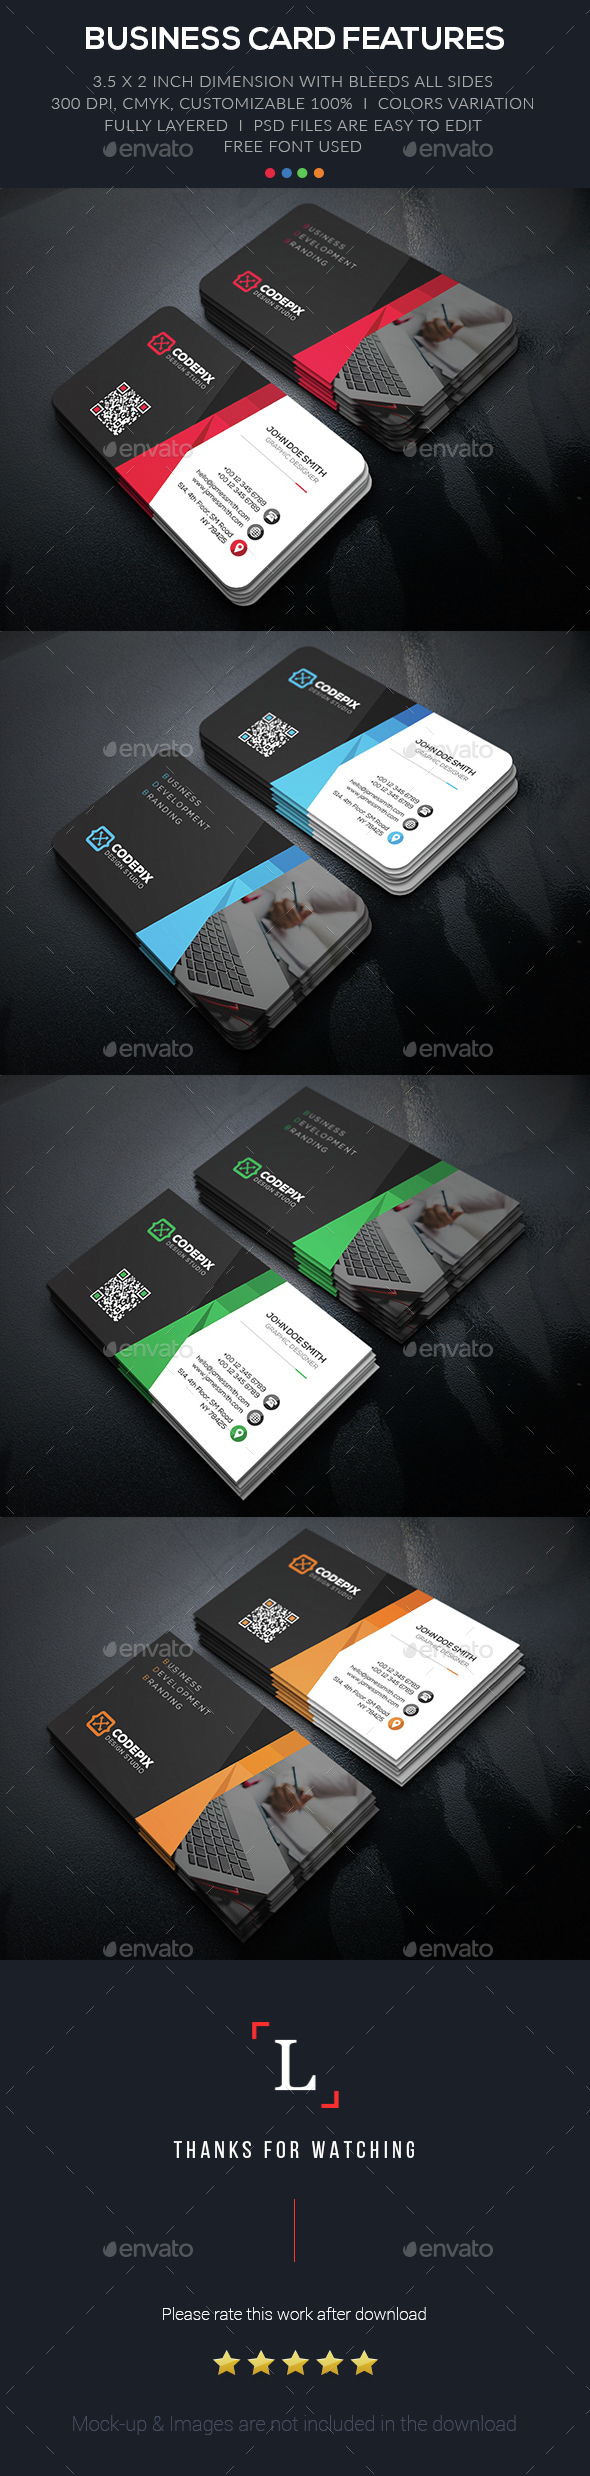 Branding Corporate Business Card - Business Cards Print Templates